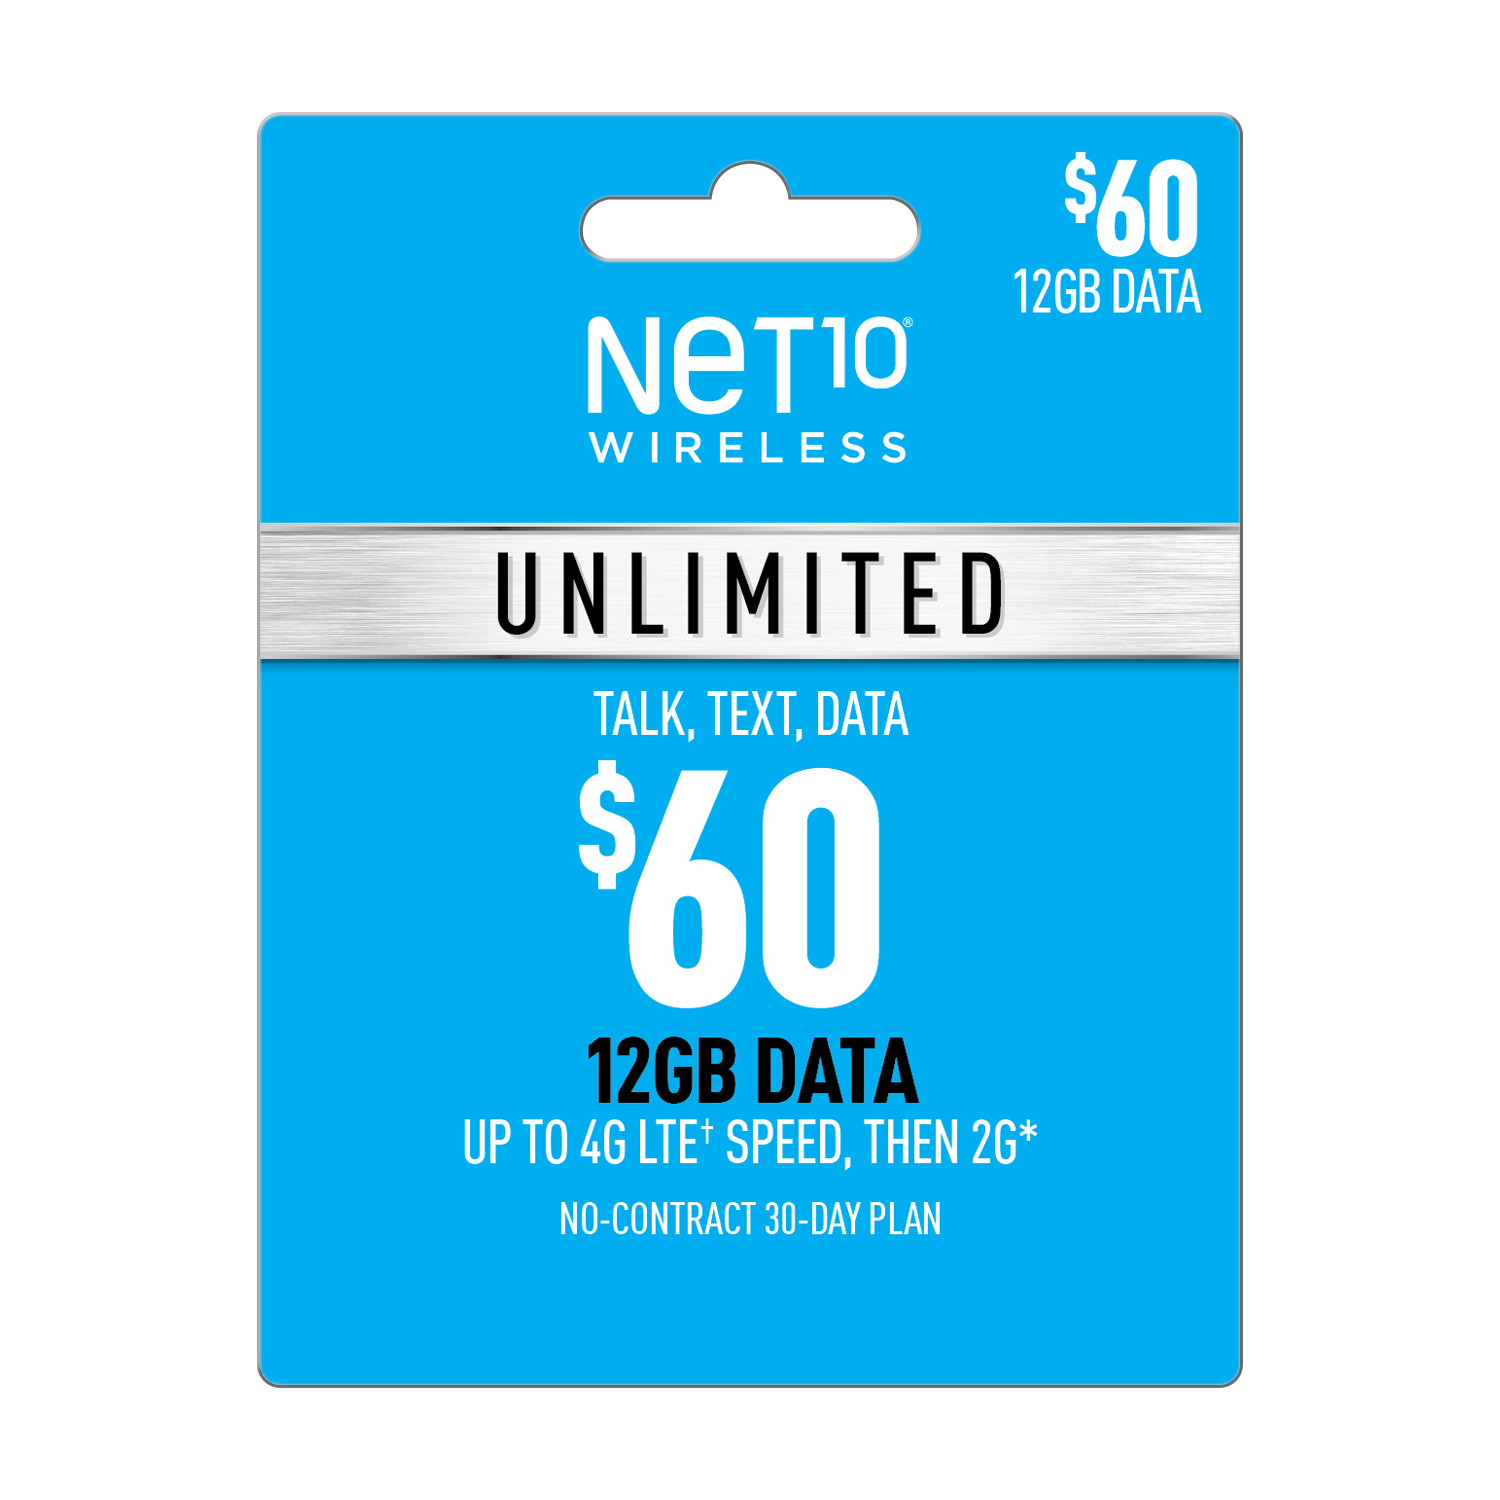 Net10 $60 Unlimited 30 Day Plan (12GB of data at high speed, then 2G*) (Email Delivery)